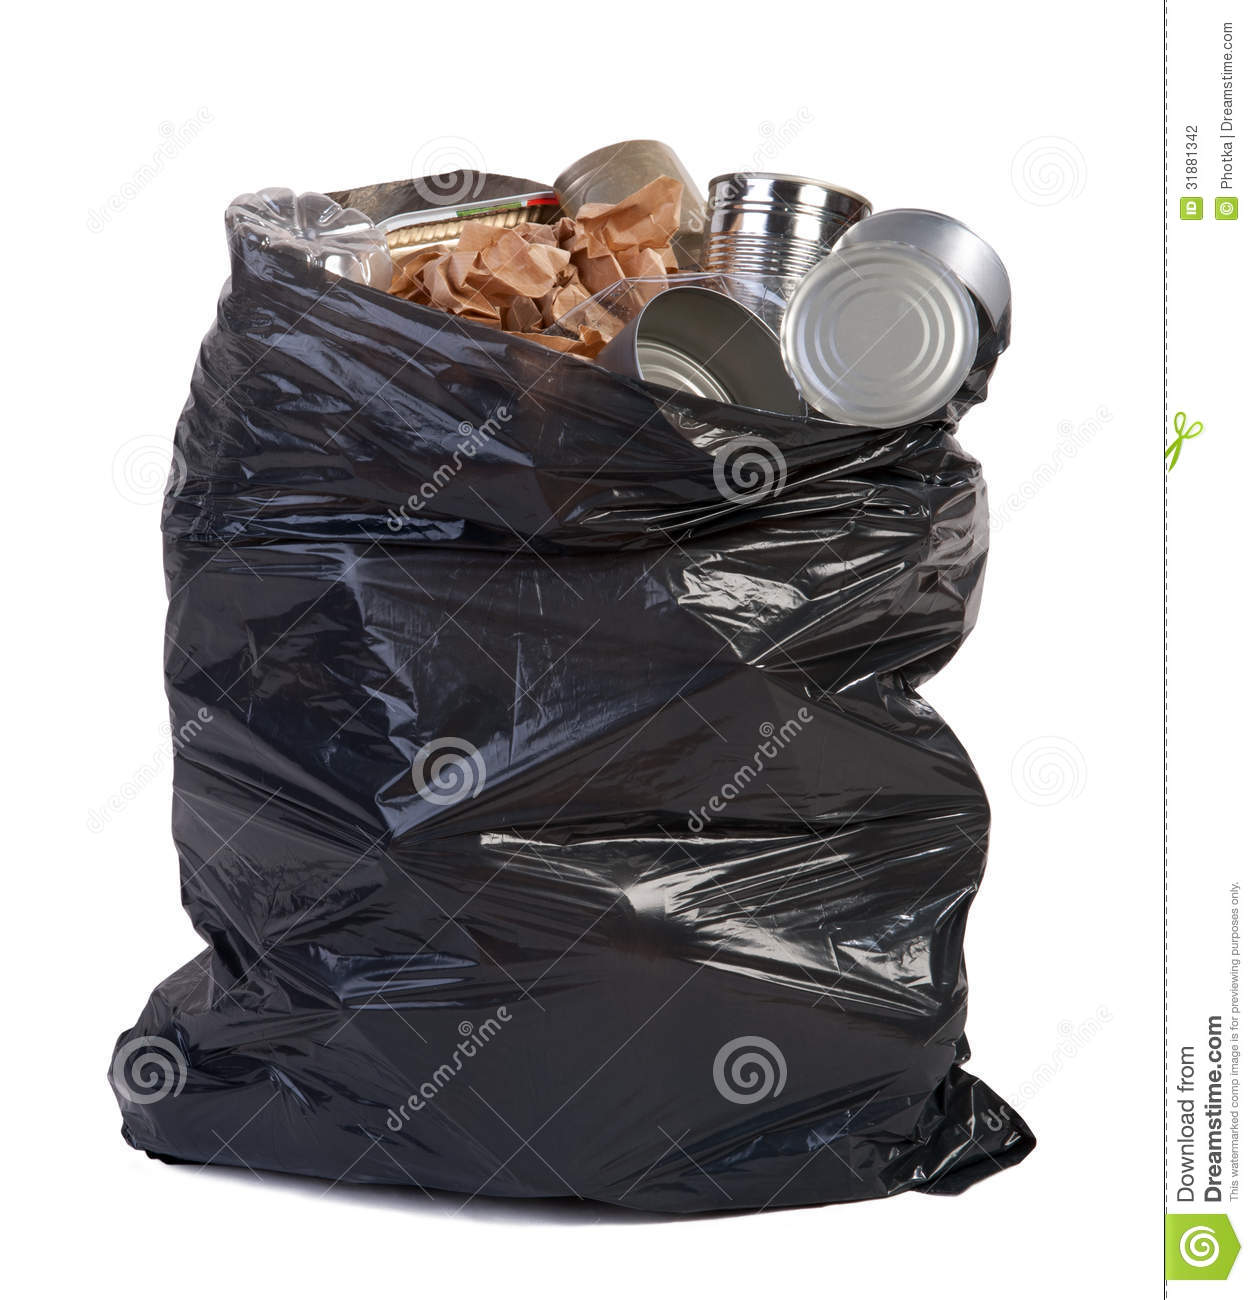 bag full of garbage stock photo image of chores liner 31881342